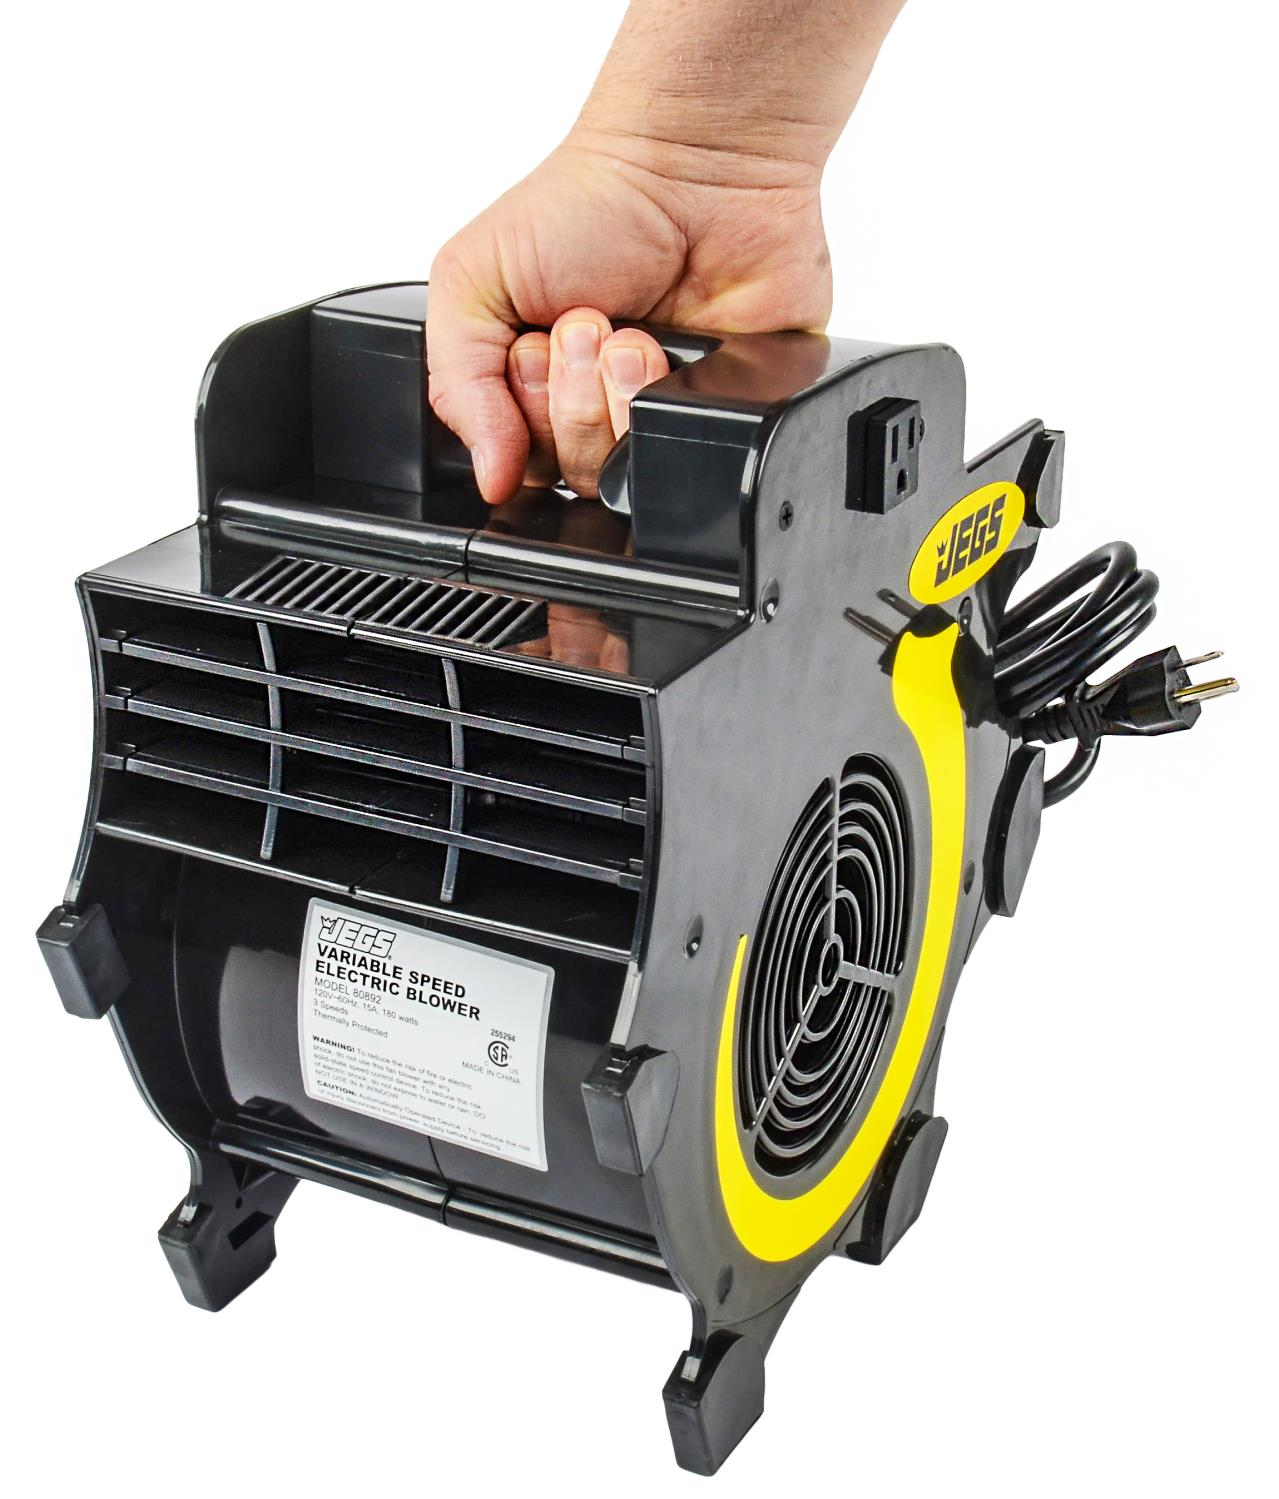 High Speed Blower Fans : Jegs performance products portable variable speed